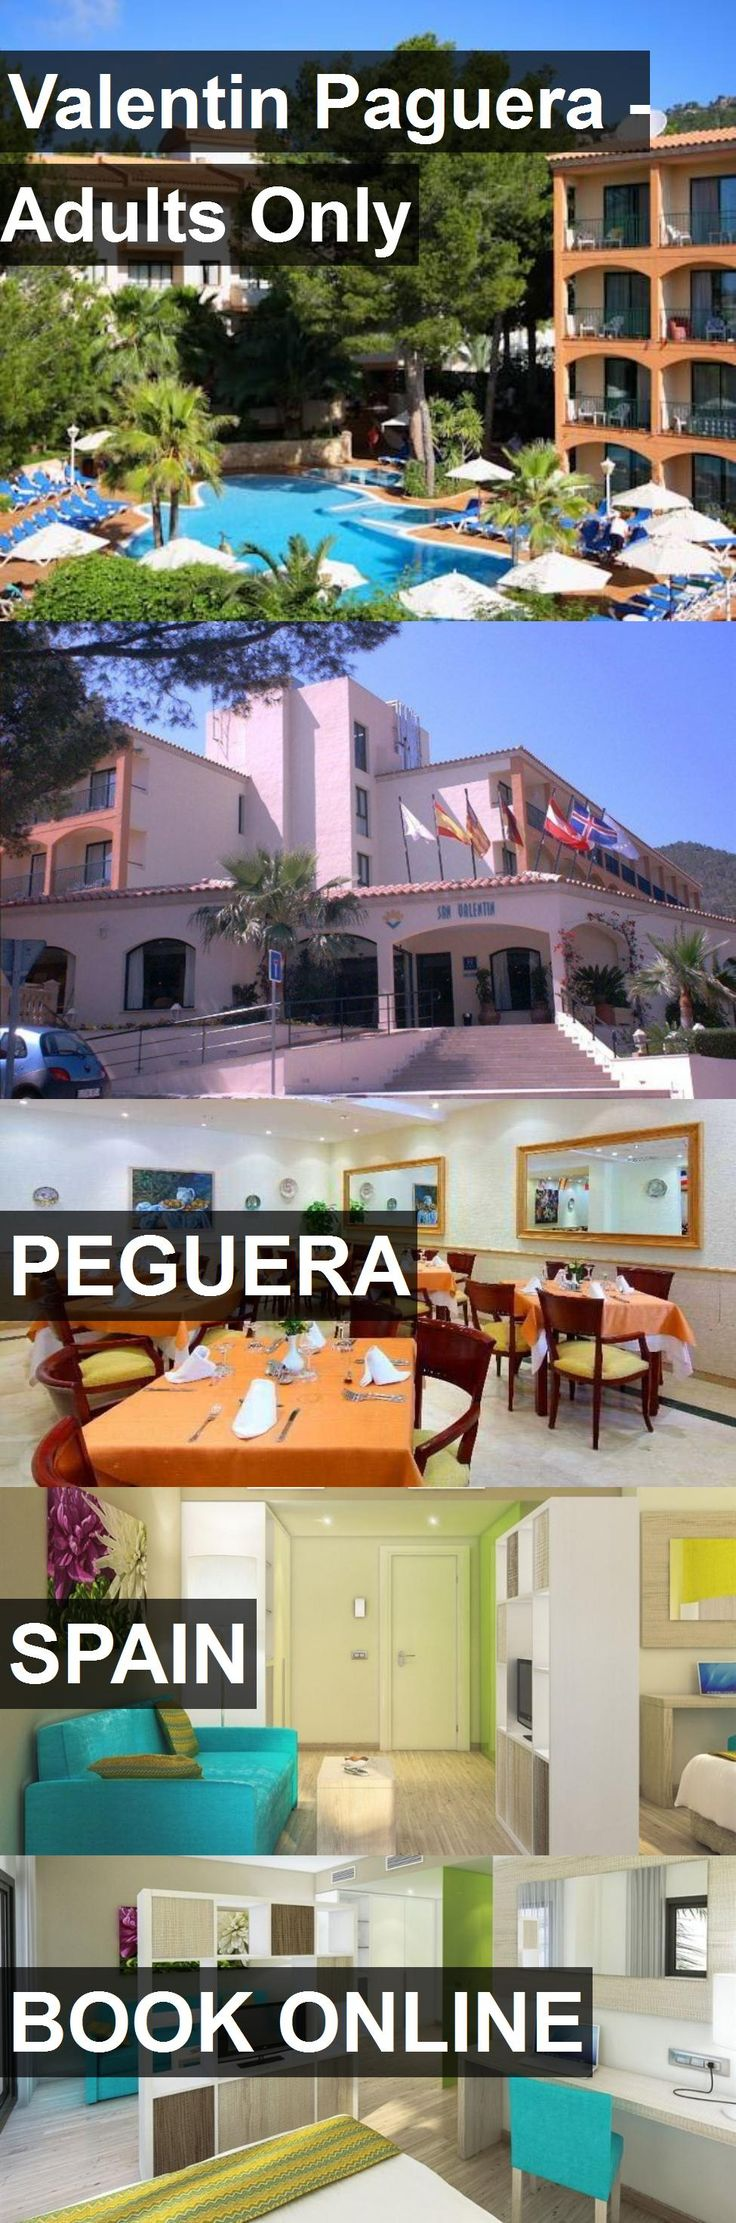 Hotel Valentin Paguera - Adults Only in Peguera, Spain. For more information, photos, reviews and best prices please follow the link. #Spain #Peguera #travel #vacation #hotel